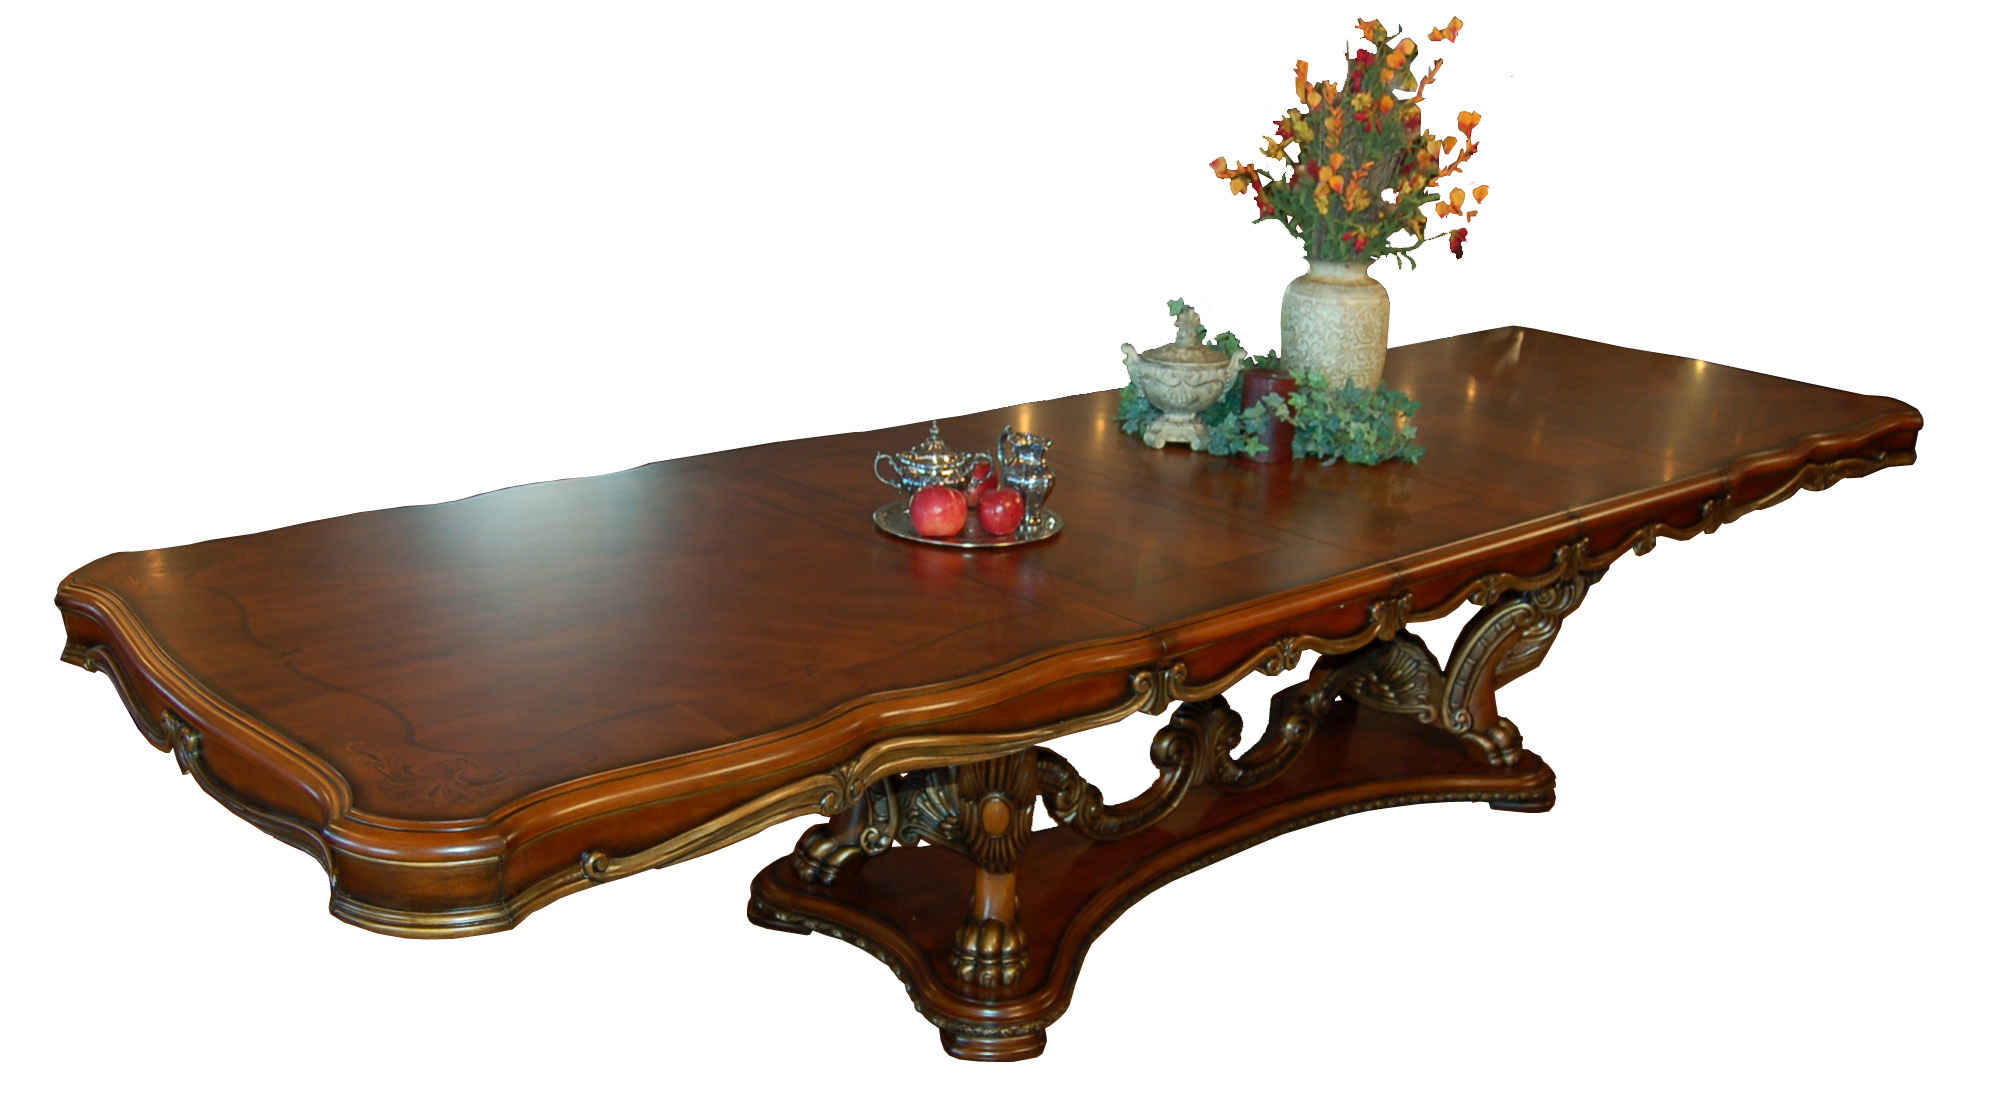 Mahogany and more dining tables ornate french rococo Huge dining room table